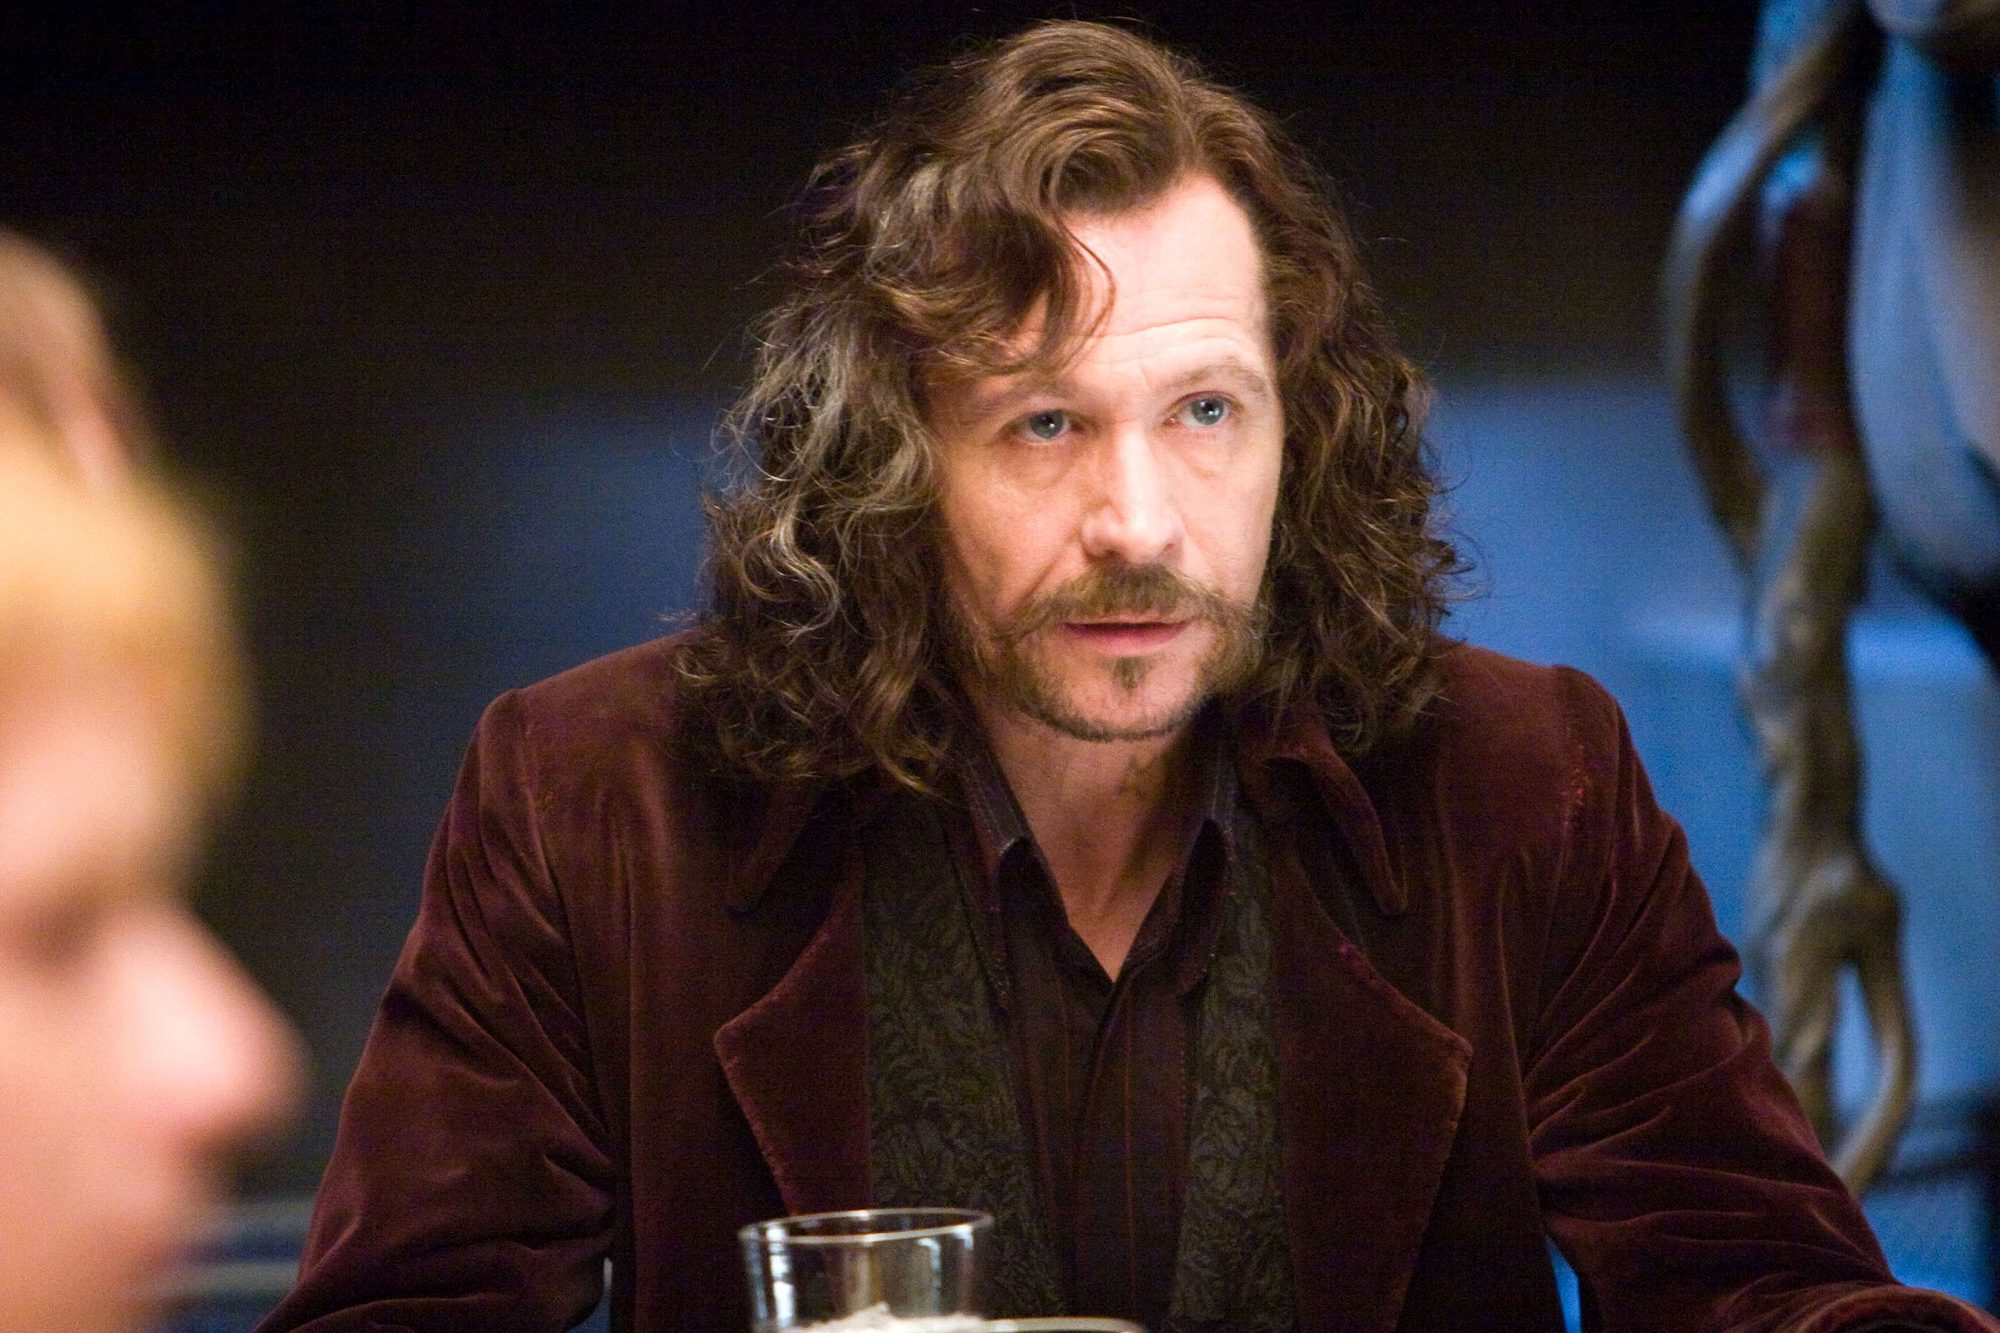 HARRY POTTER AND THE ORDER OF THE PHOENIX, Gary Oldman, 2007. ©Warner Bros./Courtesy Everett Collect